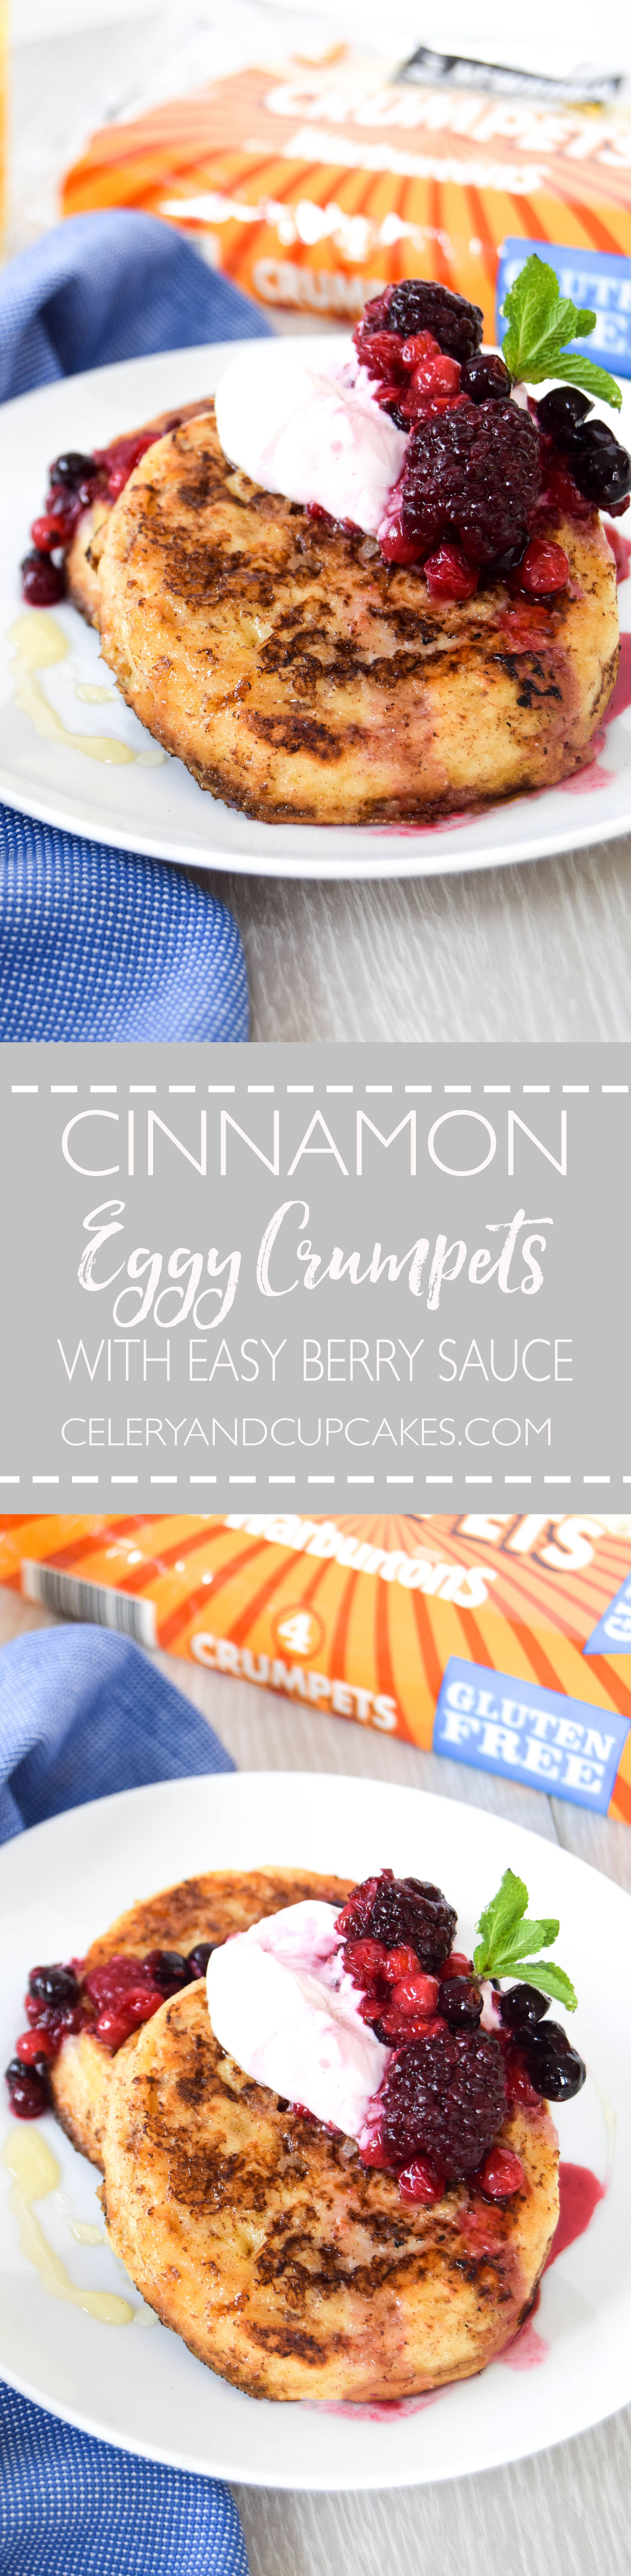 Delicious gluten free eggy crumpets spiked with cinnamon and topped with an easy berry sauce.